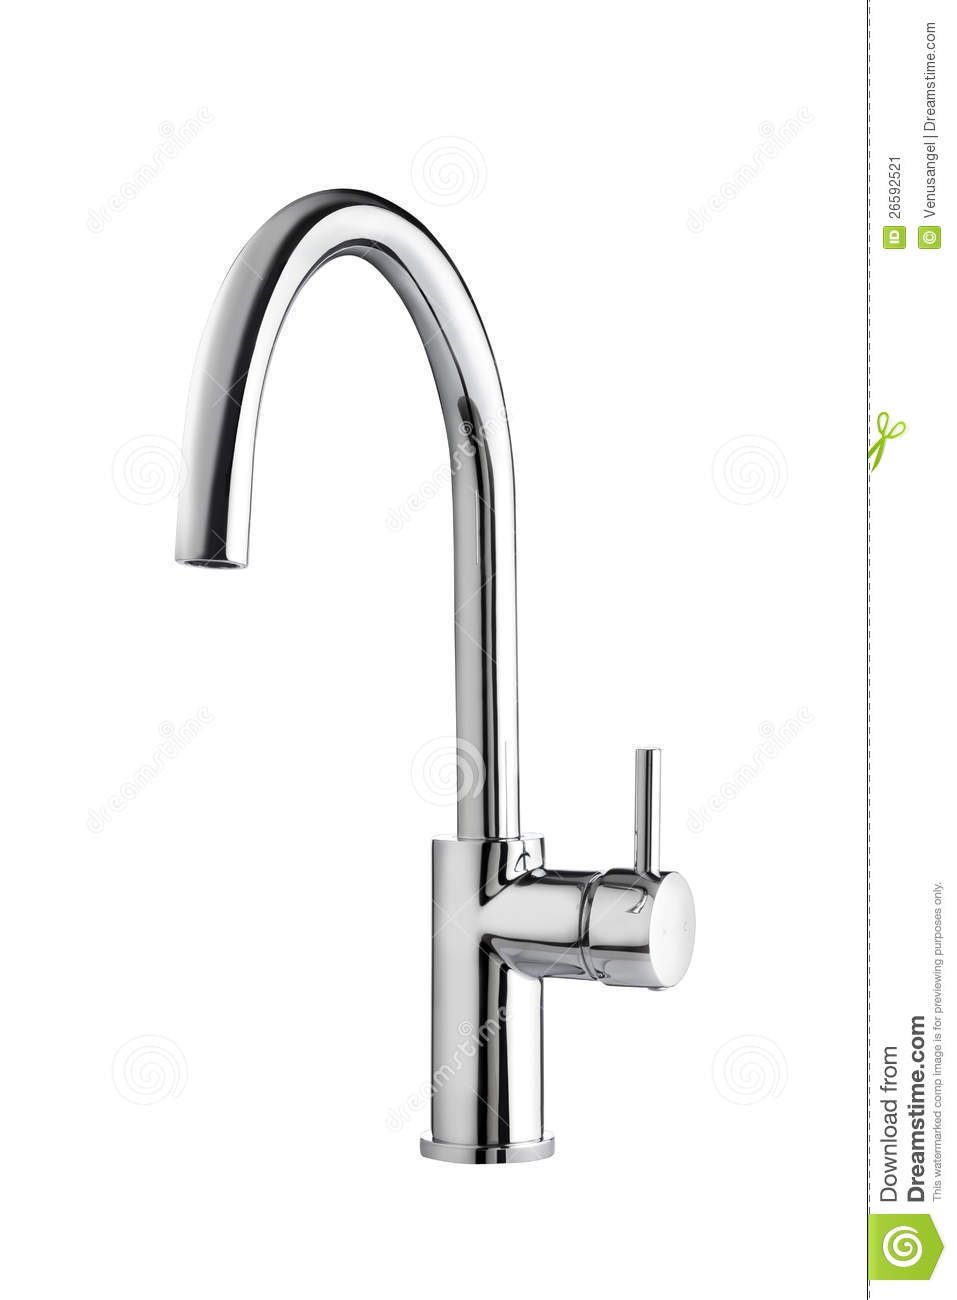 Chrome Faucet Nice For Bathroom Or Kitchen Stock Image Image 26592521